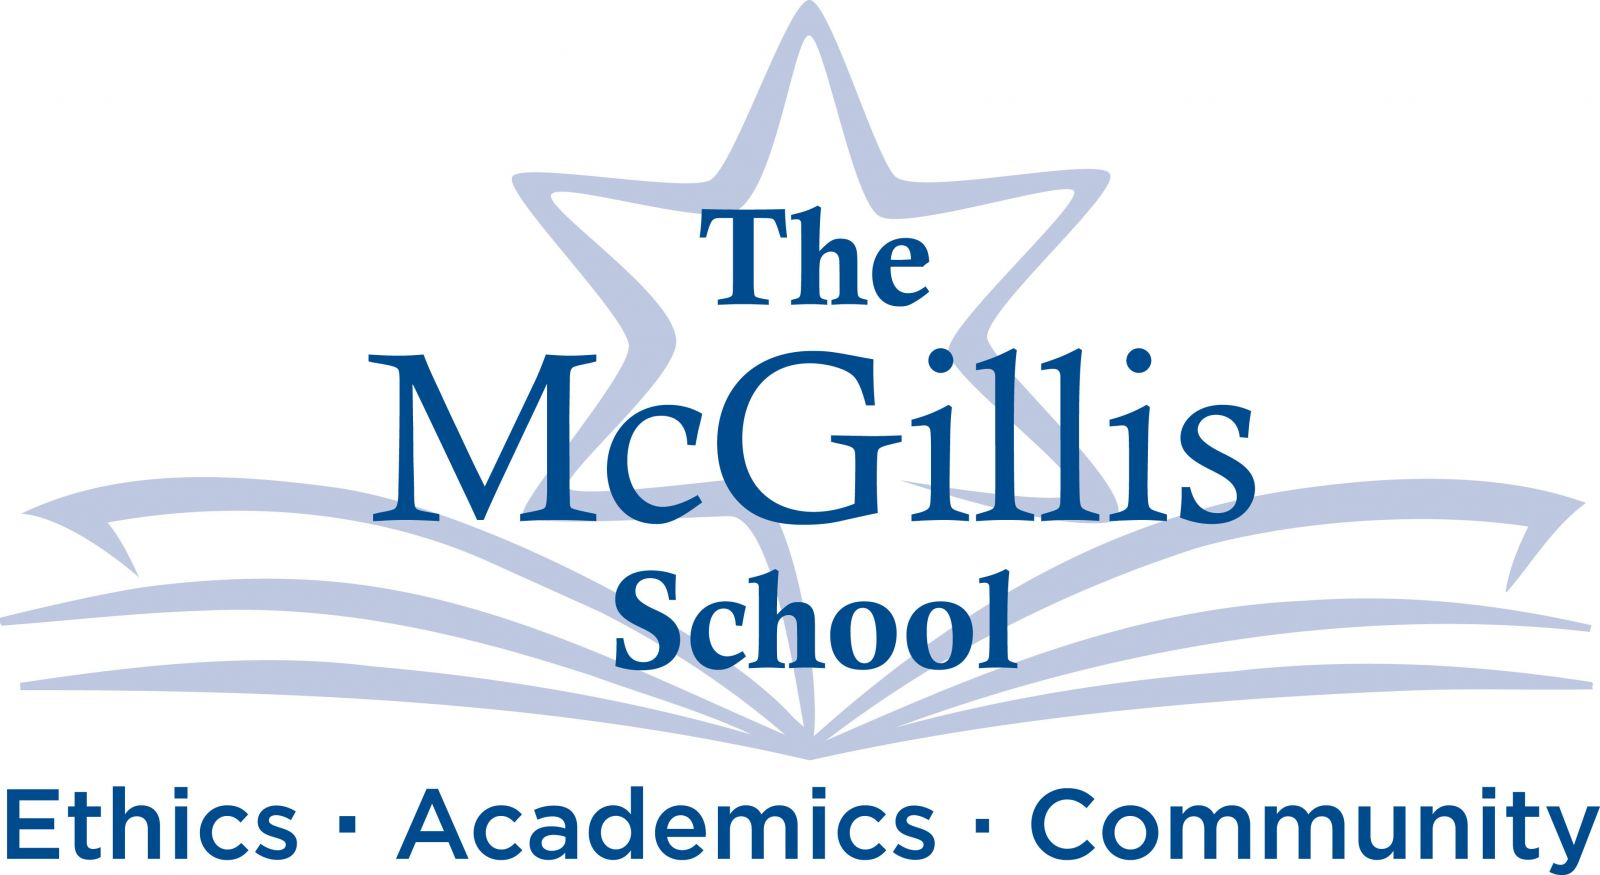 The McGillis School